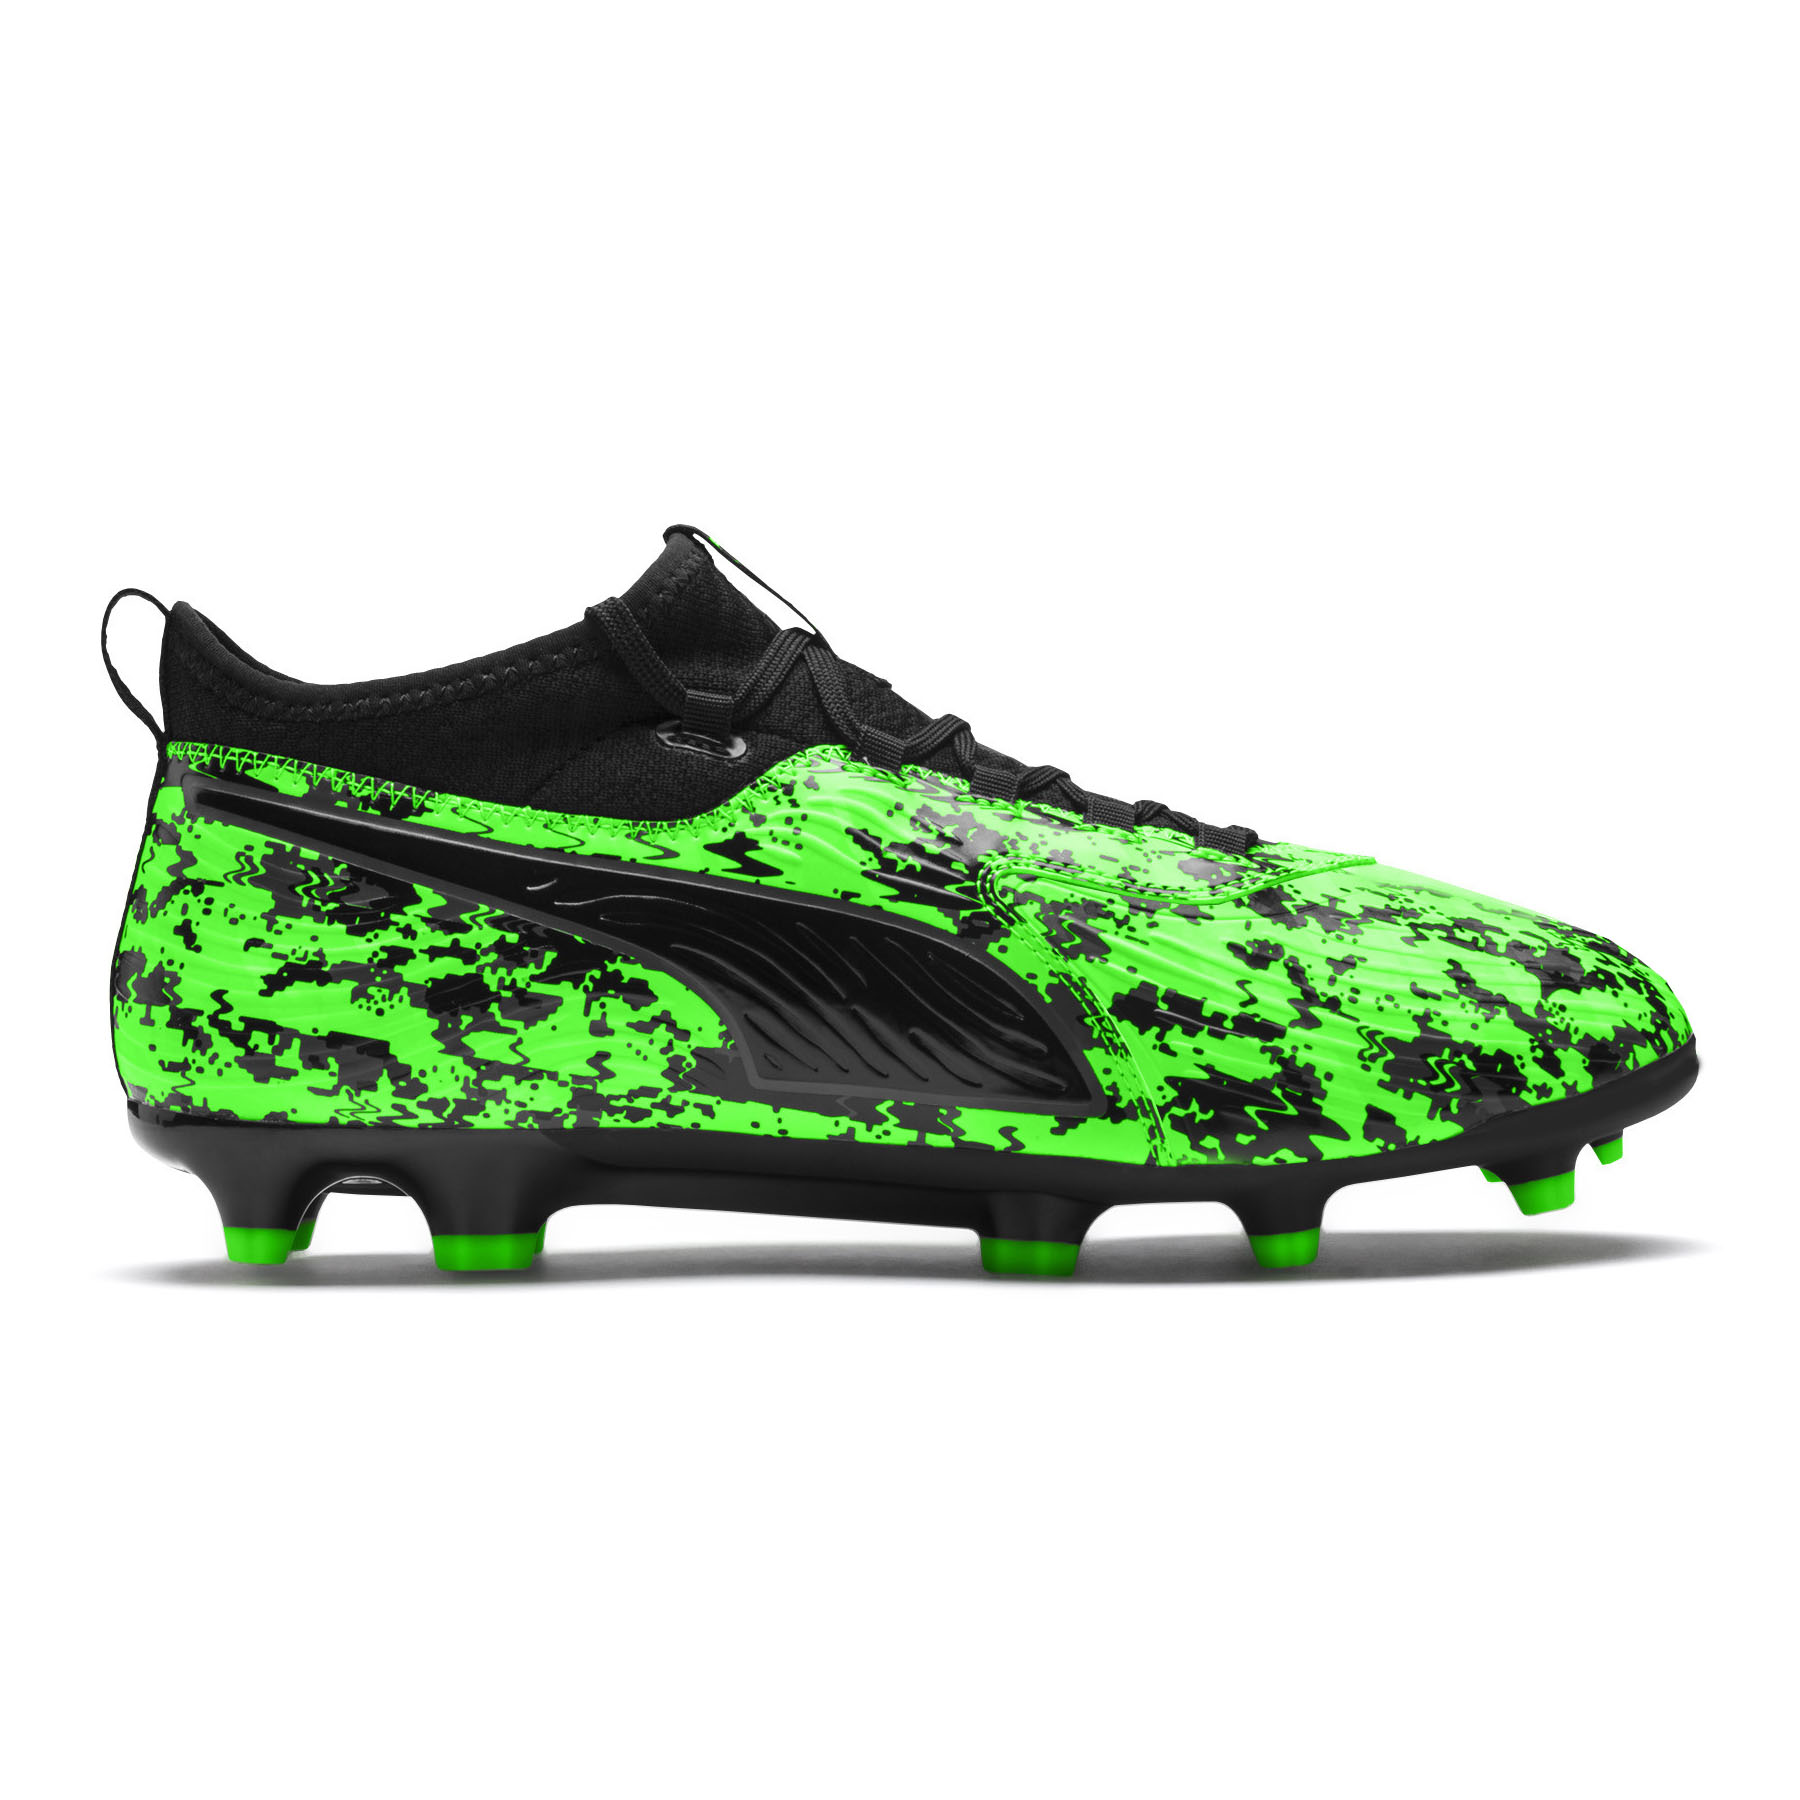 4dc21a499 Details about Puma ONE 19.3 Syn FG/AG Firm Ground Mens Football Boot Green  Hacked